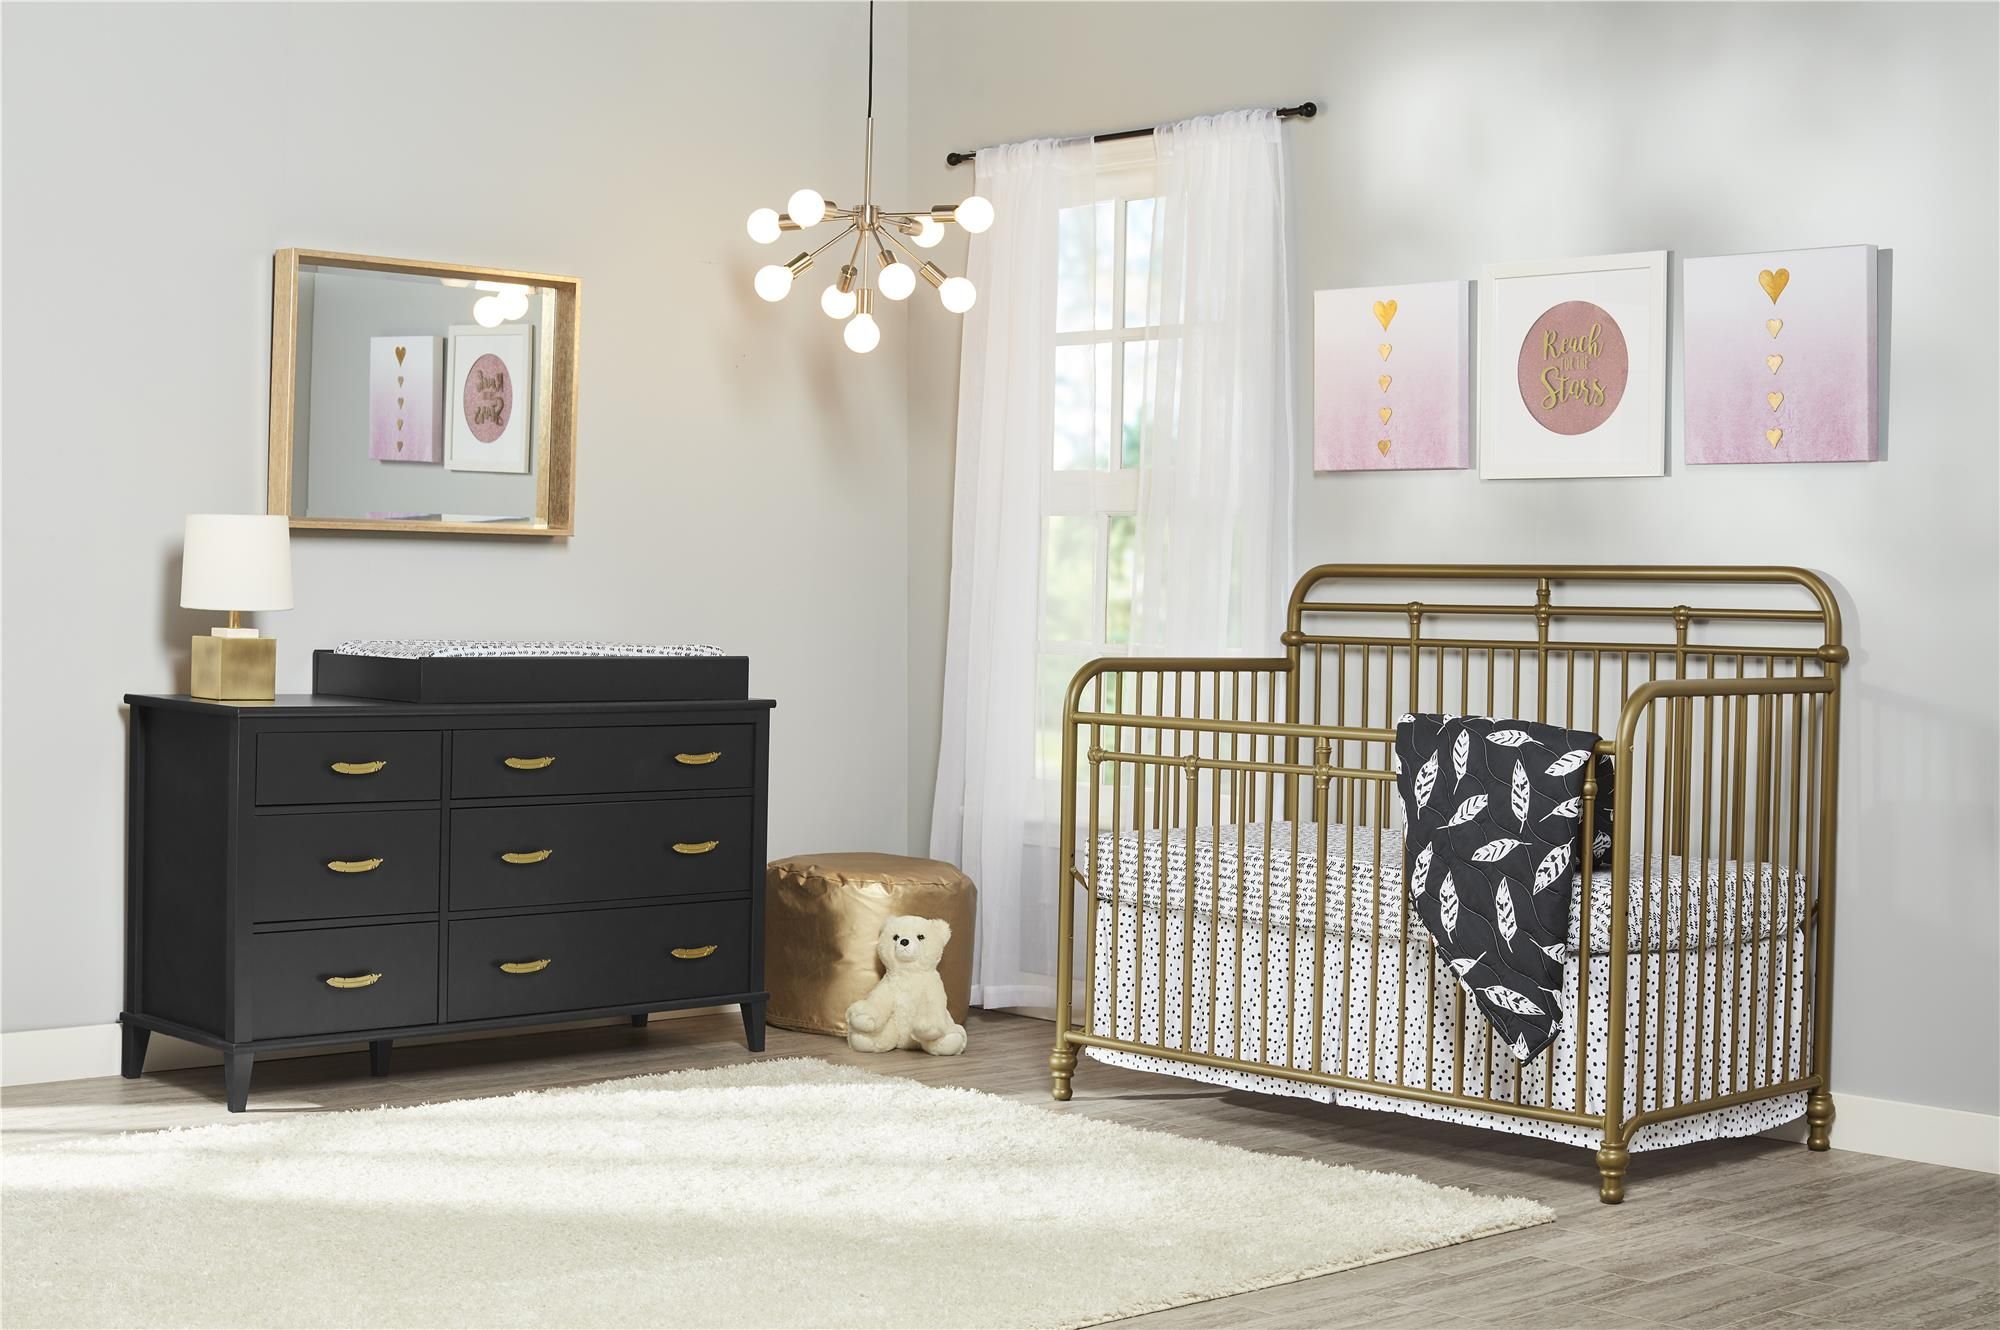 Baby Nursery furniture collections, Cribs, Convertible crib